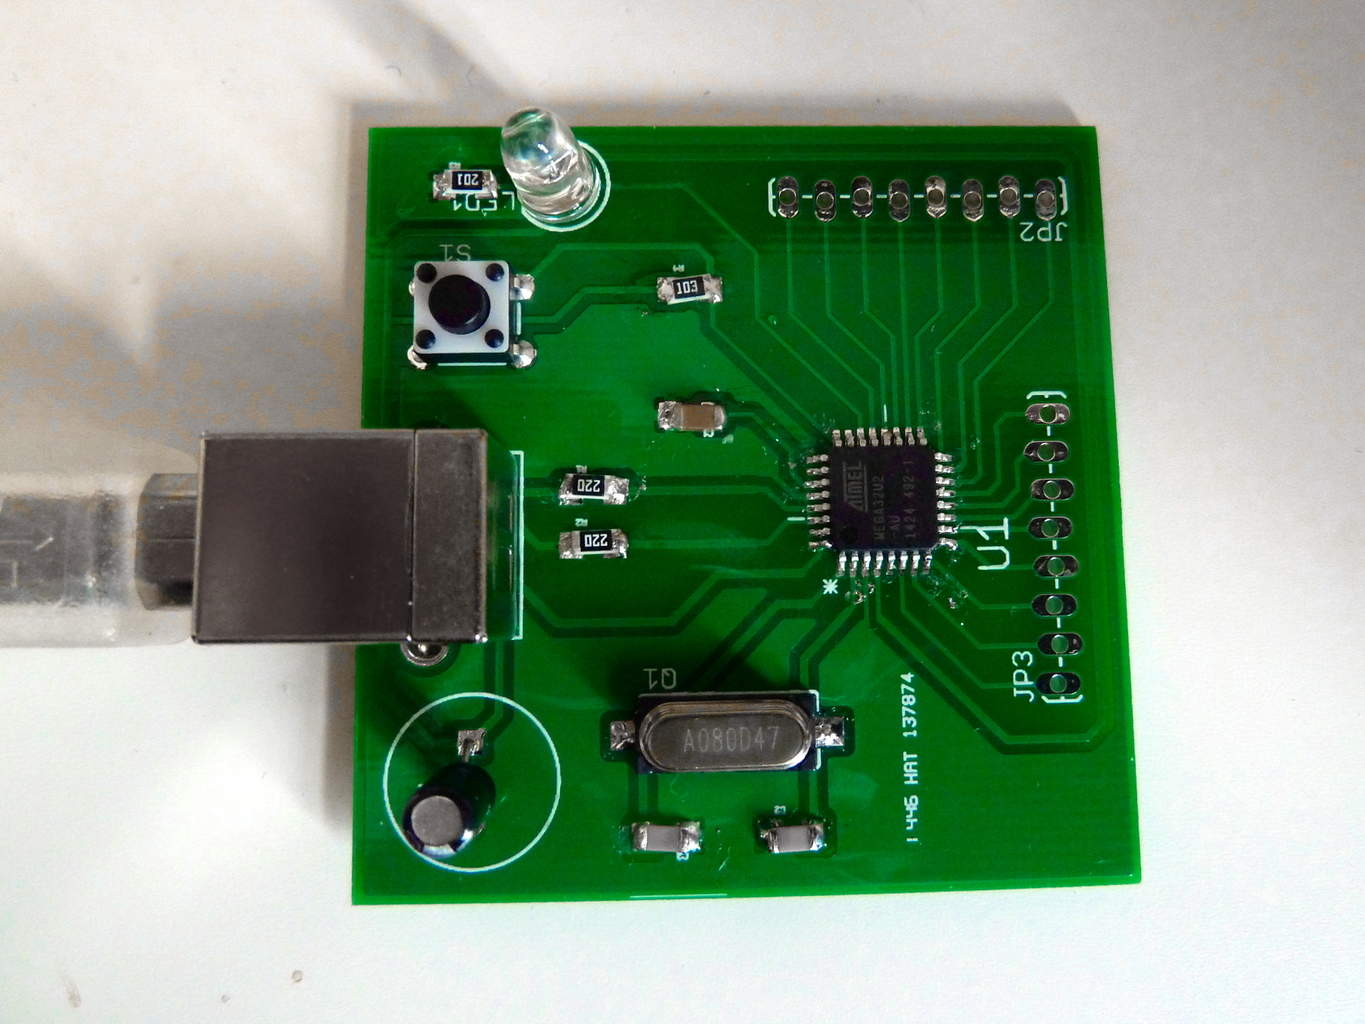 Microcontroller Tutorial 5 Soldering And Programming Make These Simple Circuits For A Continuity Tester Circuit Board